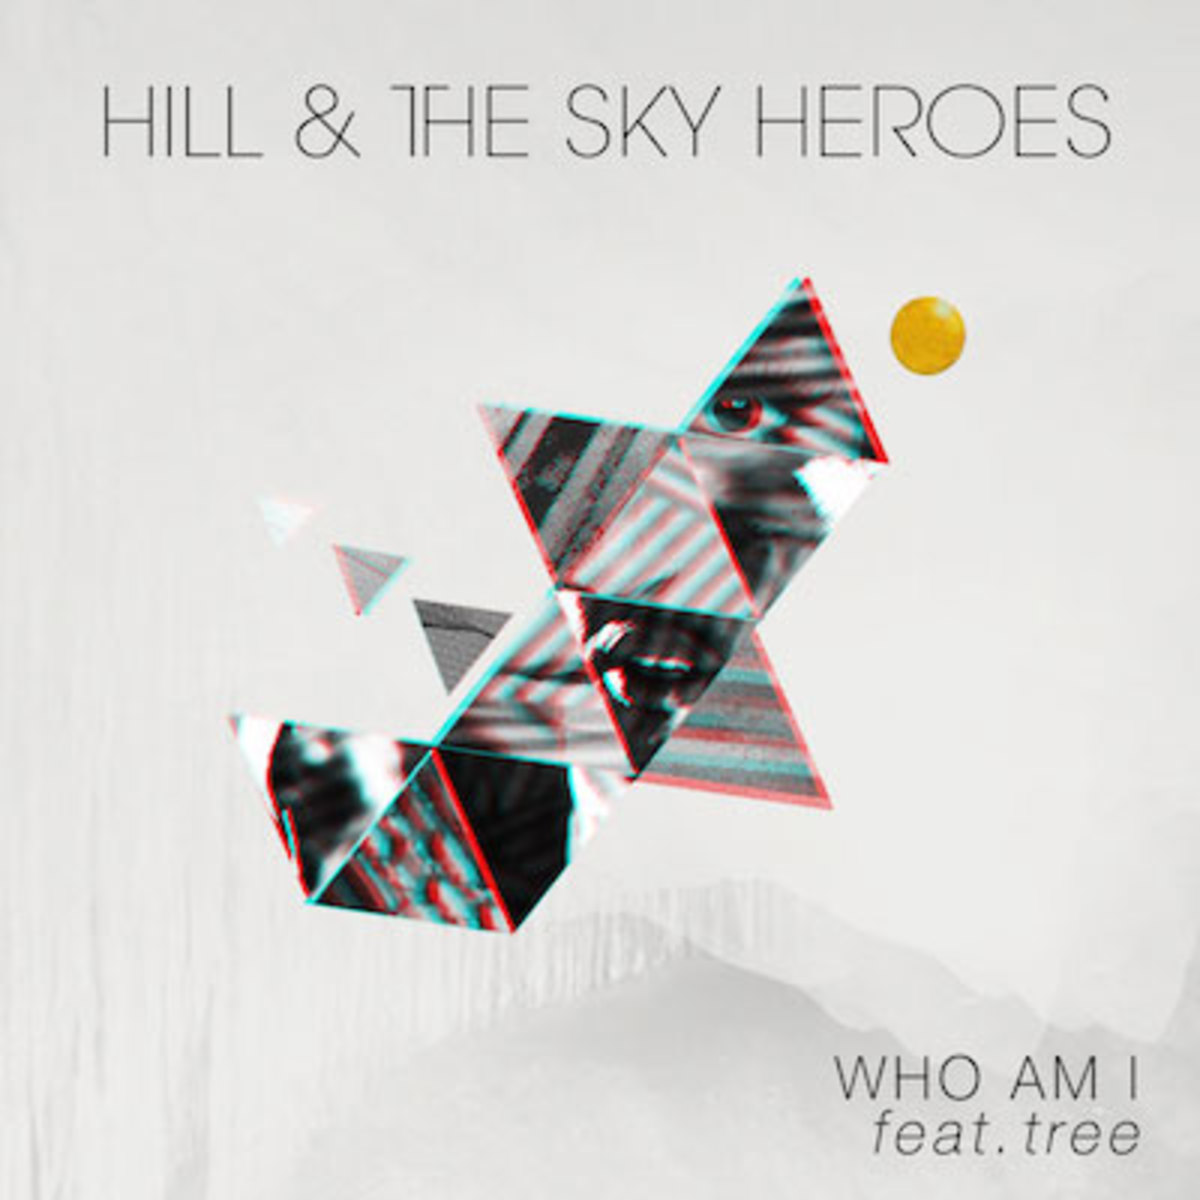 hill-sky-heroes-who-am-i.jpg